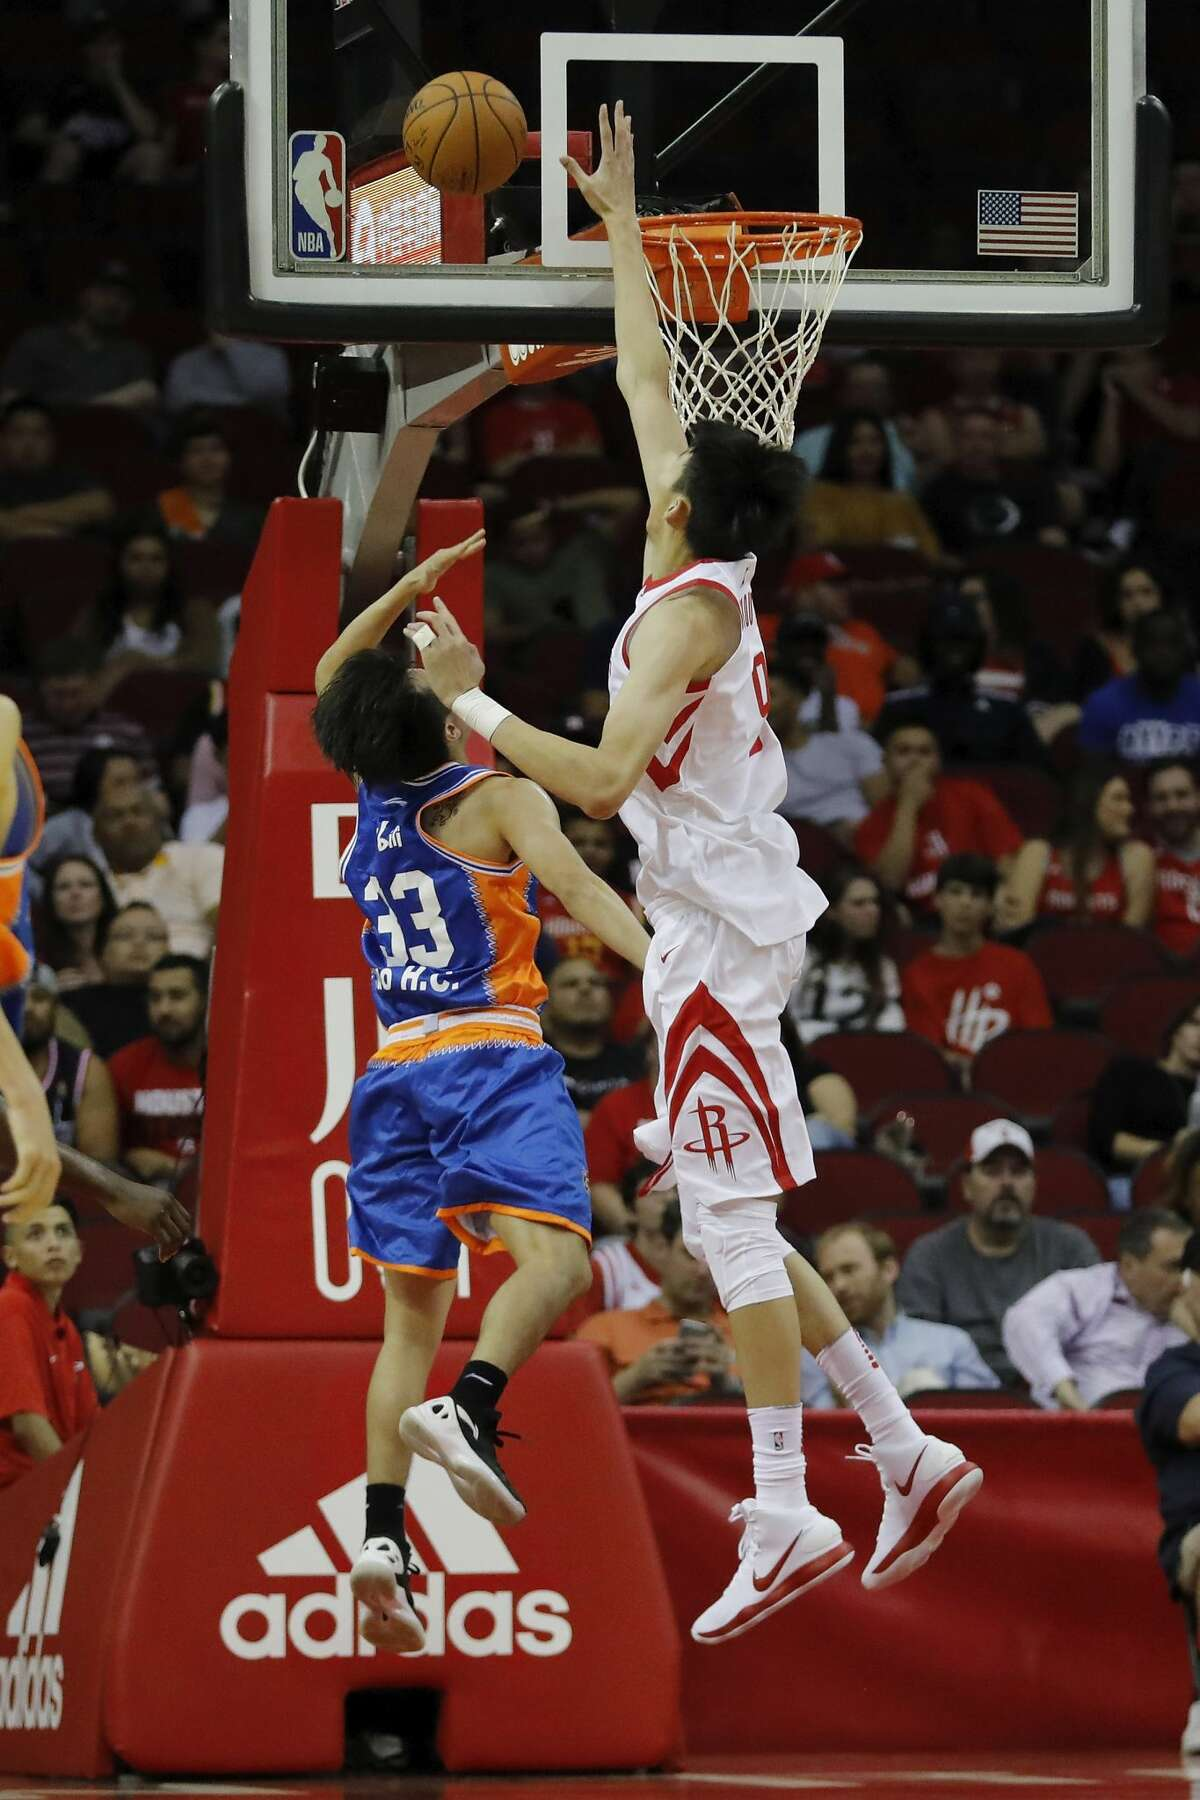 HOUSTON, TX - OCTOBER 05: Zhou Qi #9 of Houston Rockets defends the shot by Luo Hanchen #33 of Shanghai Sharks in the second quarter at Toyota Center on October 5, 2017 in Houston, Texas. NOTE TO USER: User expressly acknowledges and agrees that, by downloading and or using this Photograph, user is consenting to the terms and conditions of the Getty Images License Agreement. (Photo by Tim Warner/Getty Images)